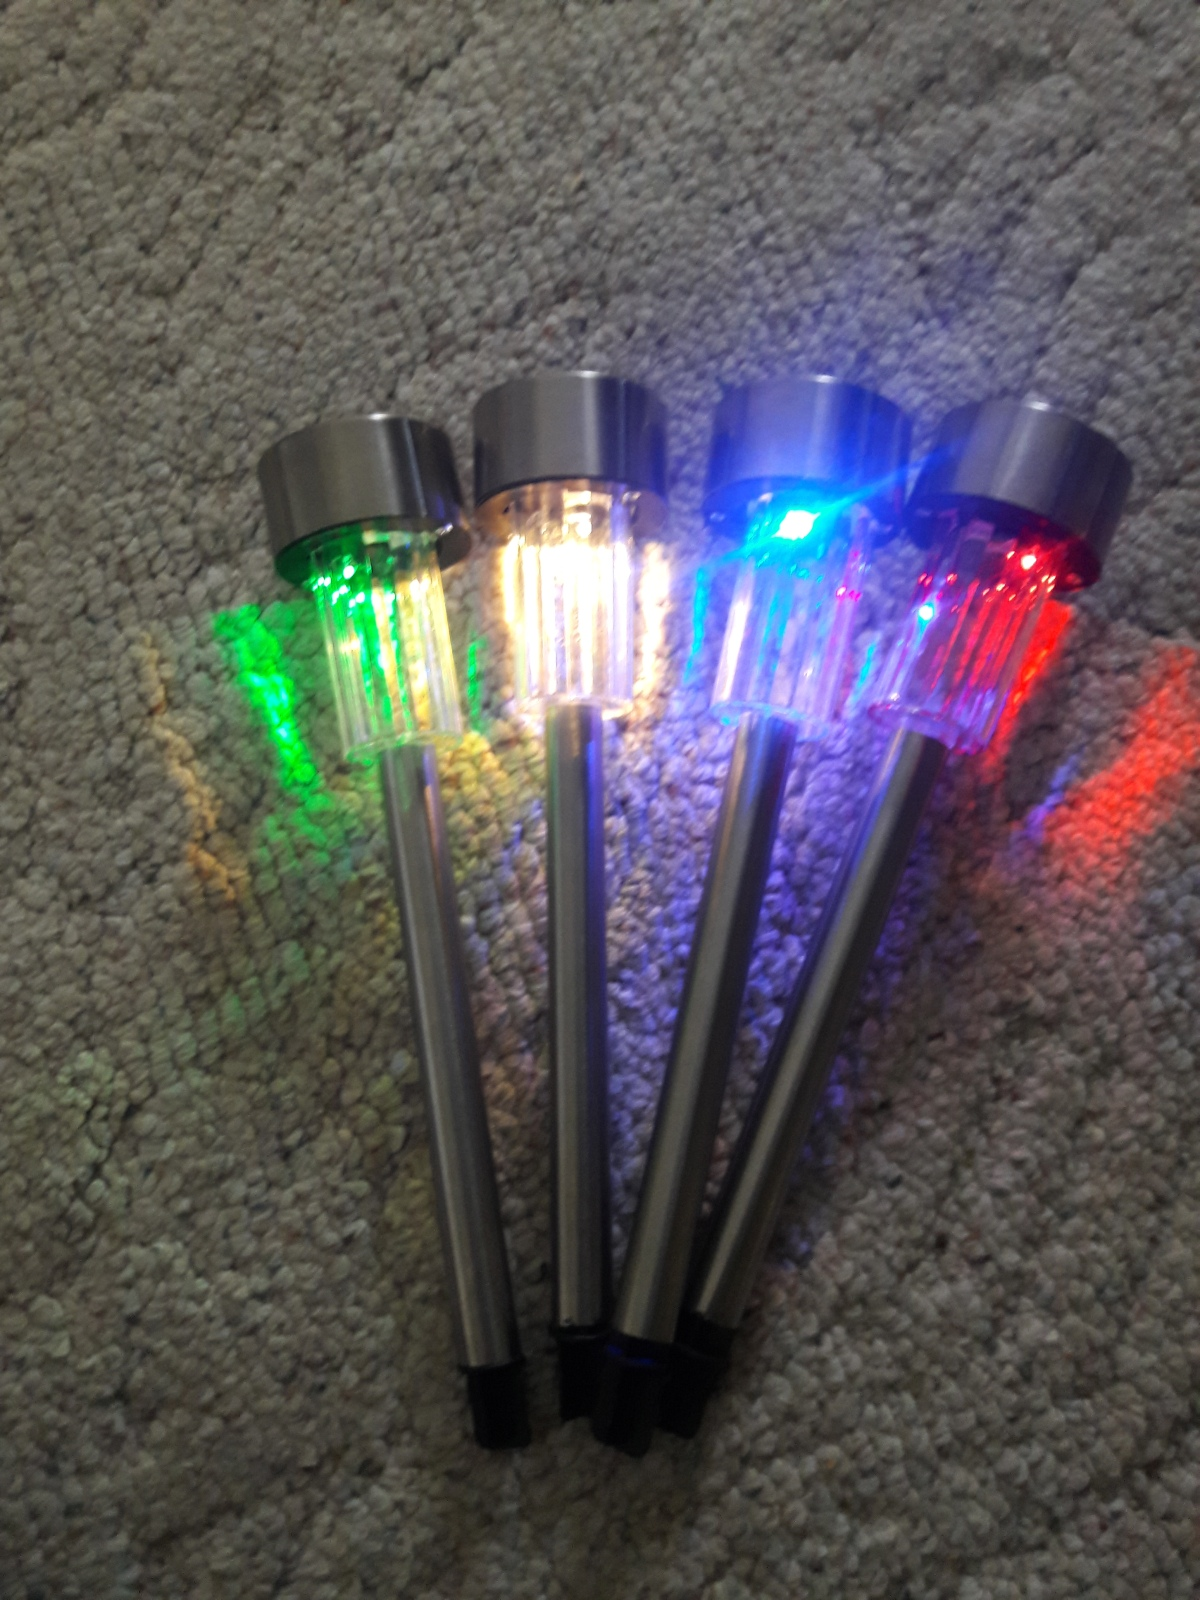 halloween outdoor lighting. the sogrand colored 8 piece led stainless steel solar lights, are so very pretty, and really show up well. i love that you get 2 of each color. halloween outdoor lighting